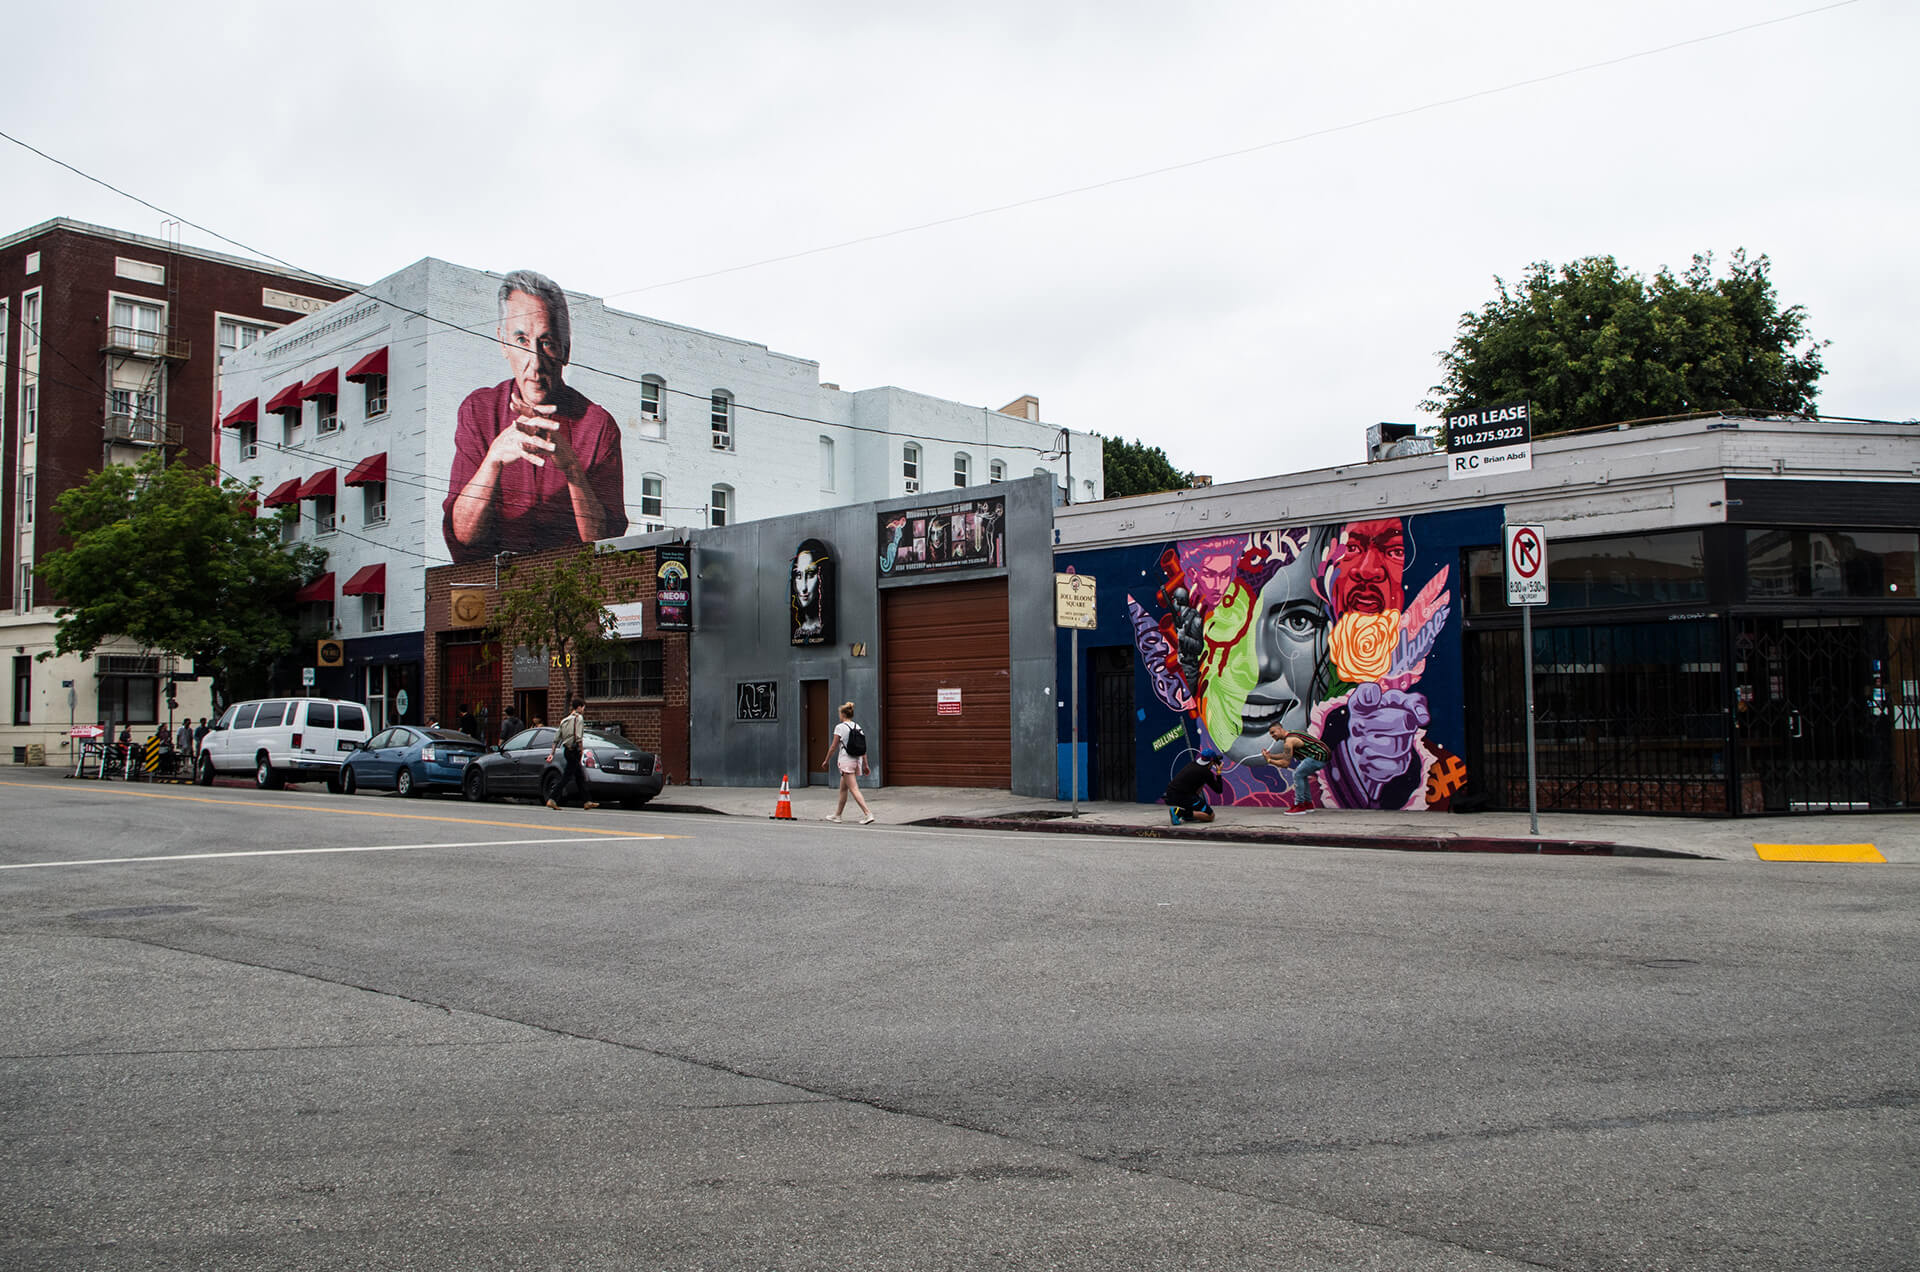 The Arts District in Los Angeles. Buildings with art murals